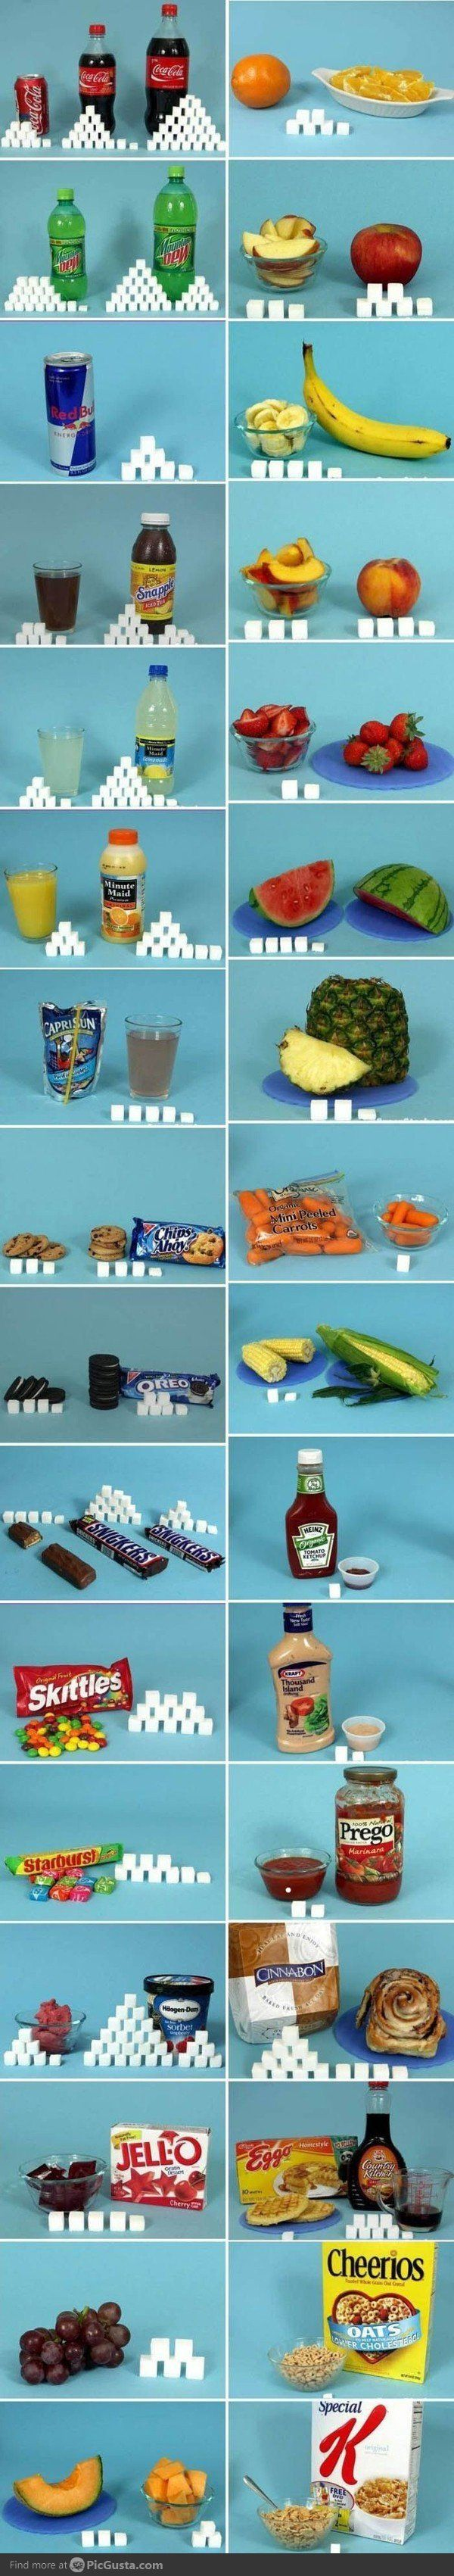 Now you know why you're fat!